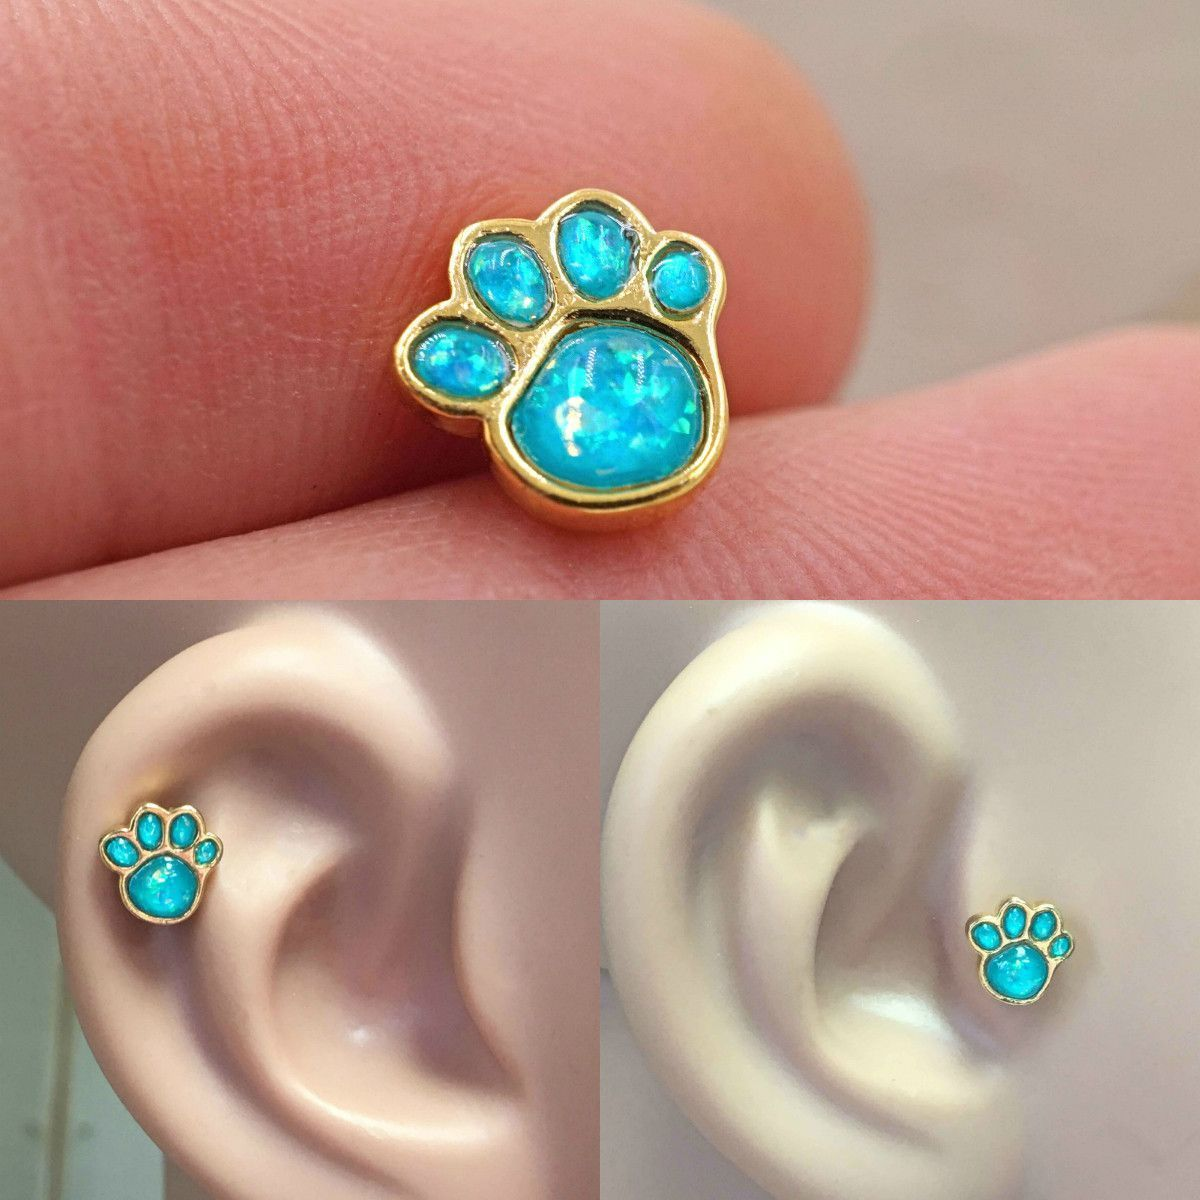 Nose piercing 6mm  Animal paw print gold cartilage earring or helix piercing with aqua